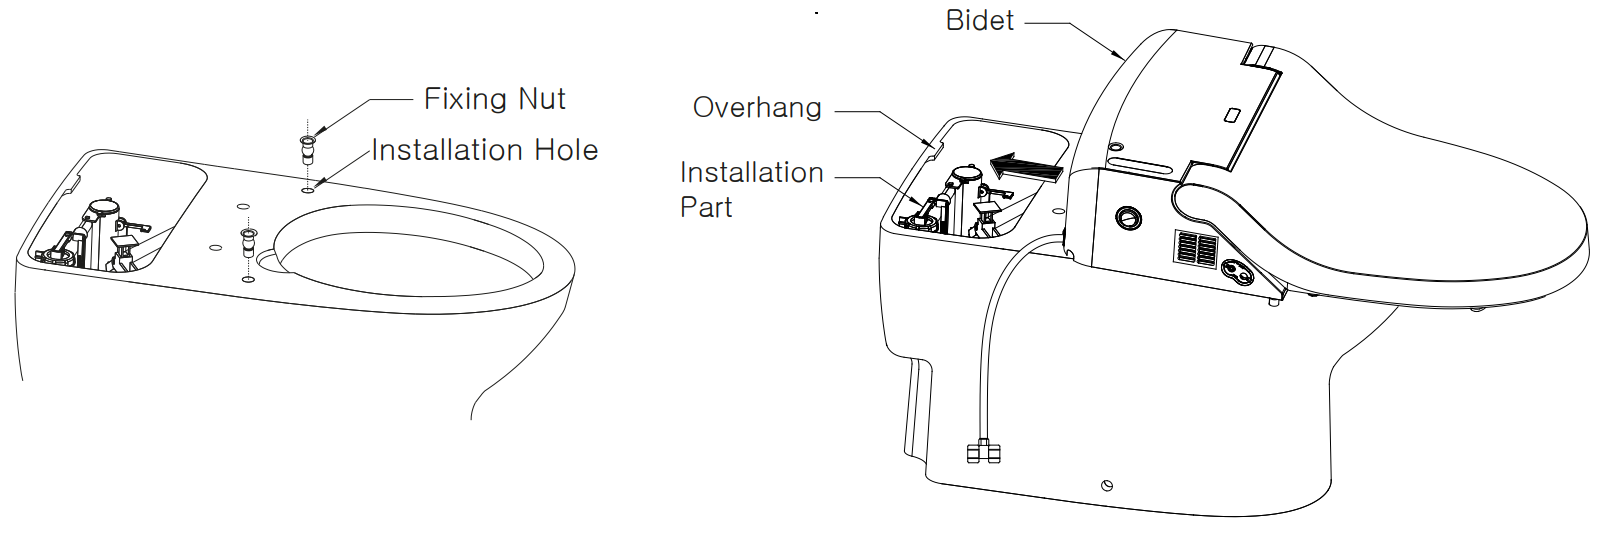 Bio Bidet Installation Instructions.Installing The Bio Bidet Uspa Ib 835 Instructions And Tips